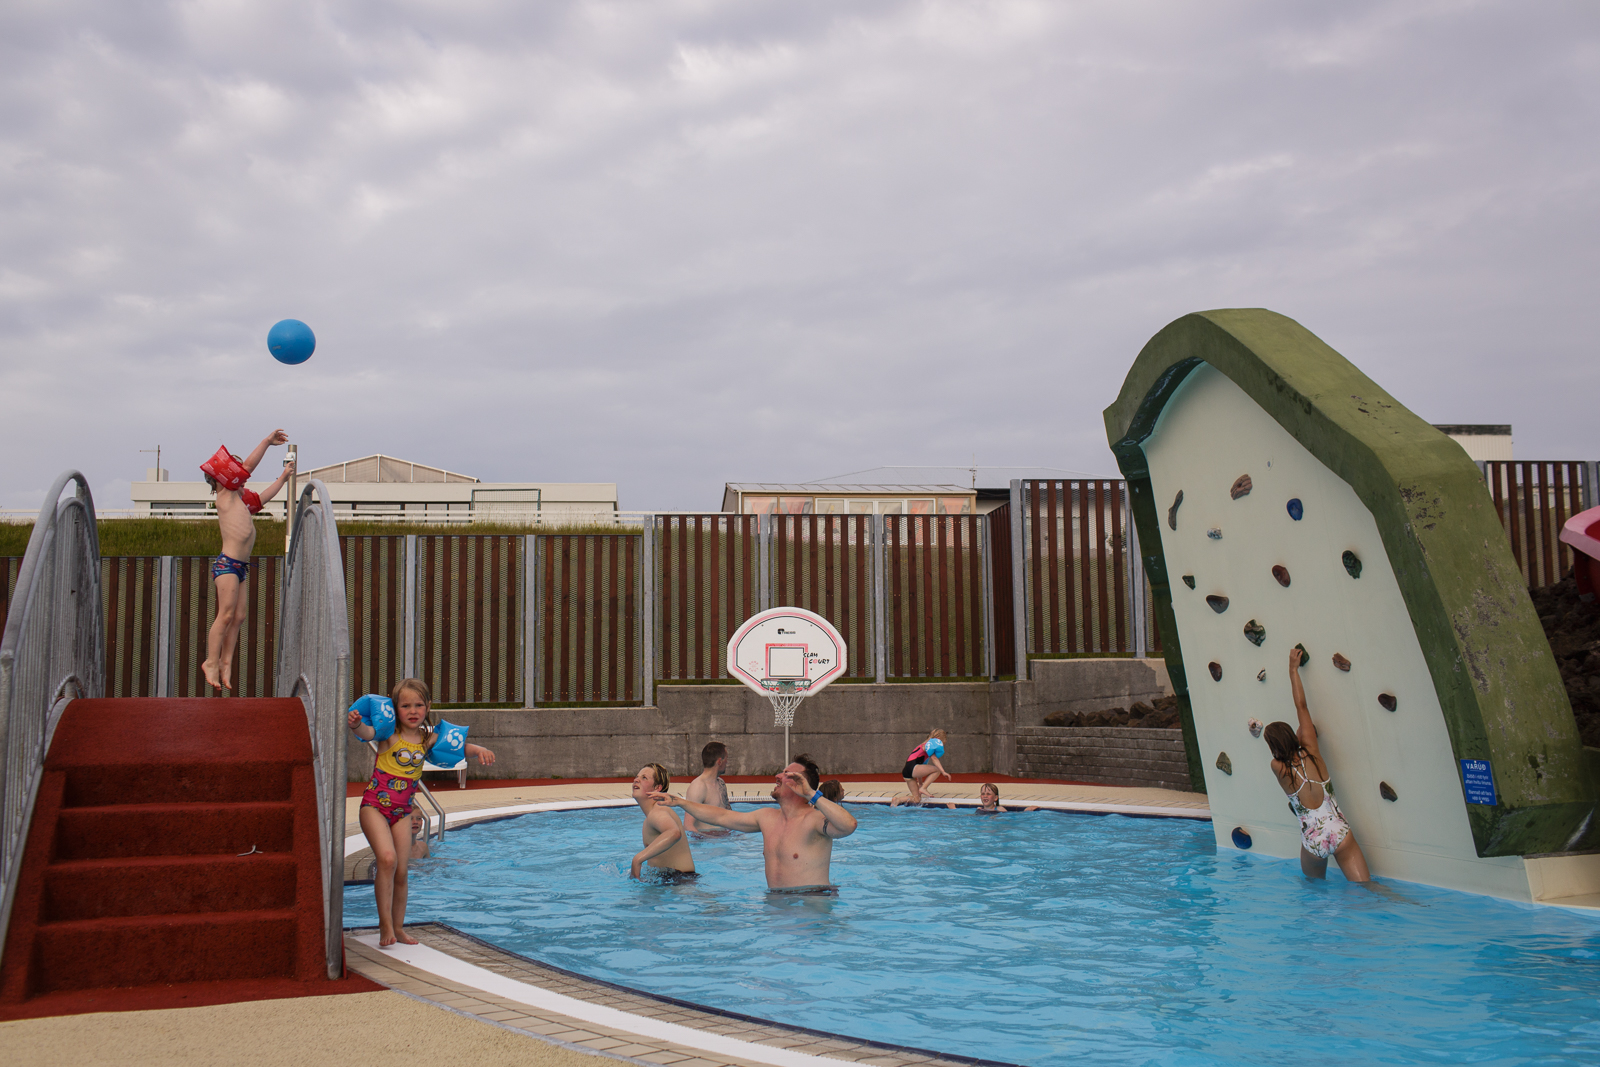 People enjoy the public pool in Heimaey, an island in the Vestmannaeyjar Archipelago off the southern coast of Iceland.